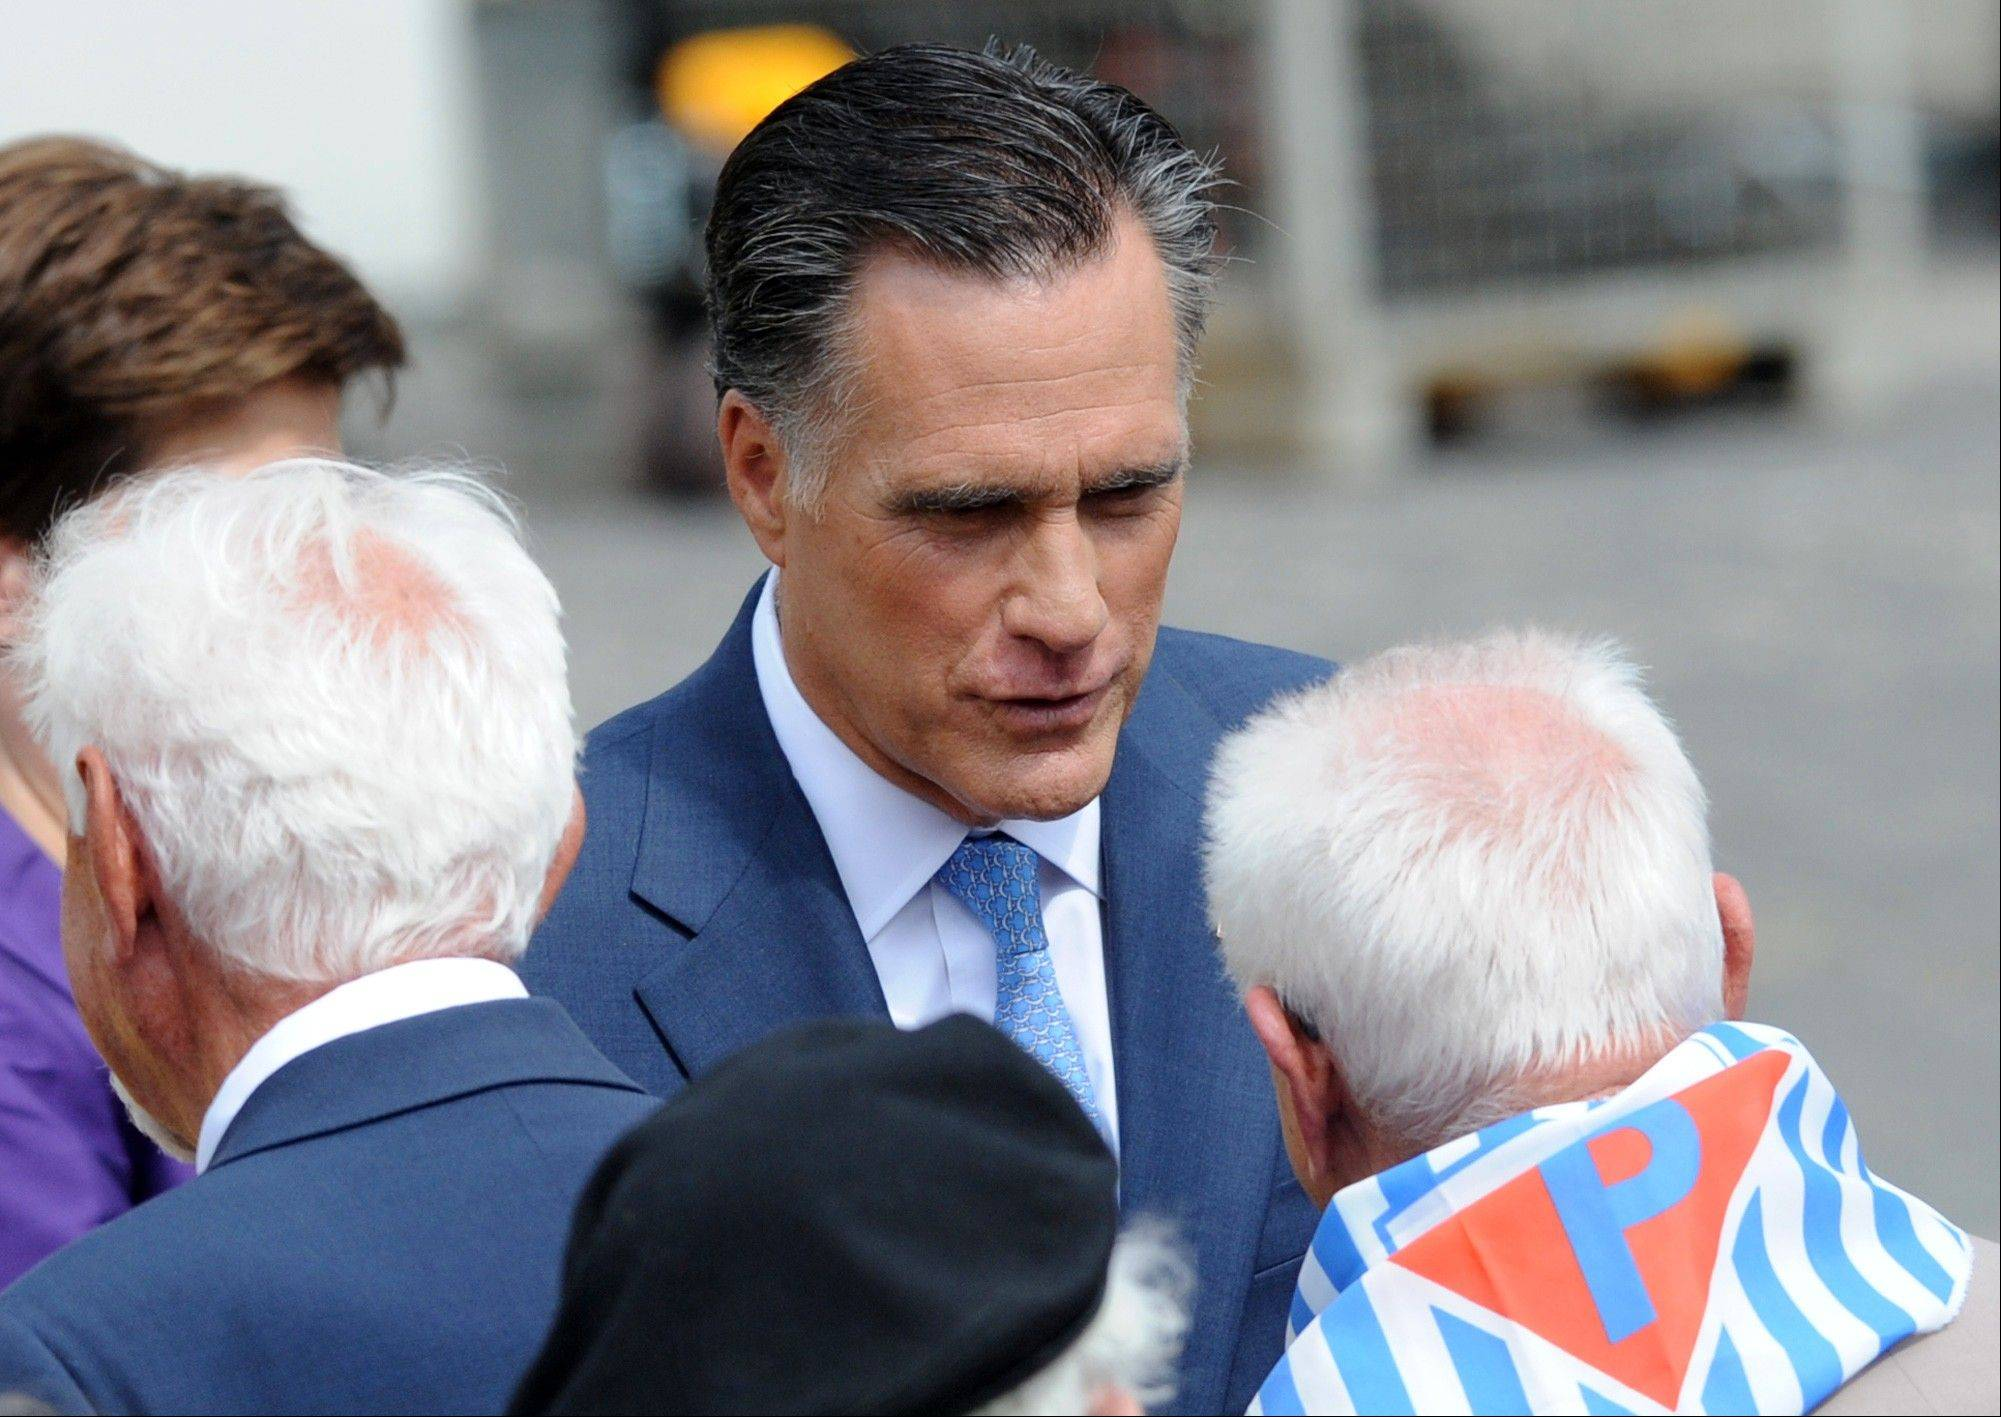 U.S. Republican presidential candidate, former Massachusetts Gov. Mitt Romney, facing camera, speaks with Polish World War II veterans and a survivor of a Nazi concentration camp after laying a wreath at the Warsaw 1944 Uprising monument in Warsaw, Poland, Tuesday, July 31, 20